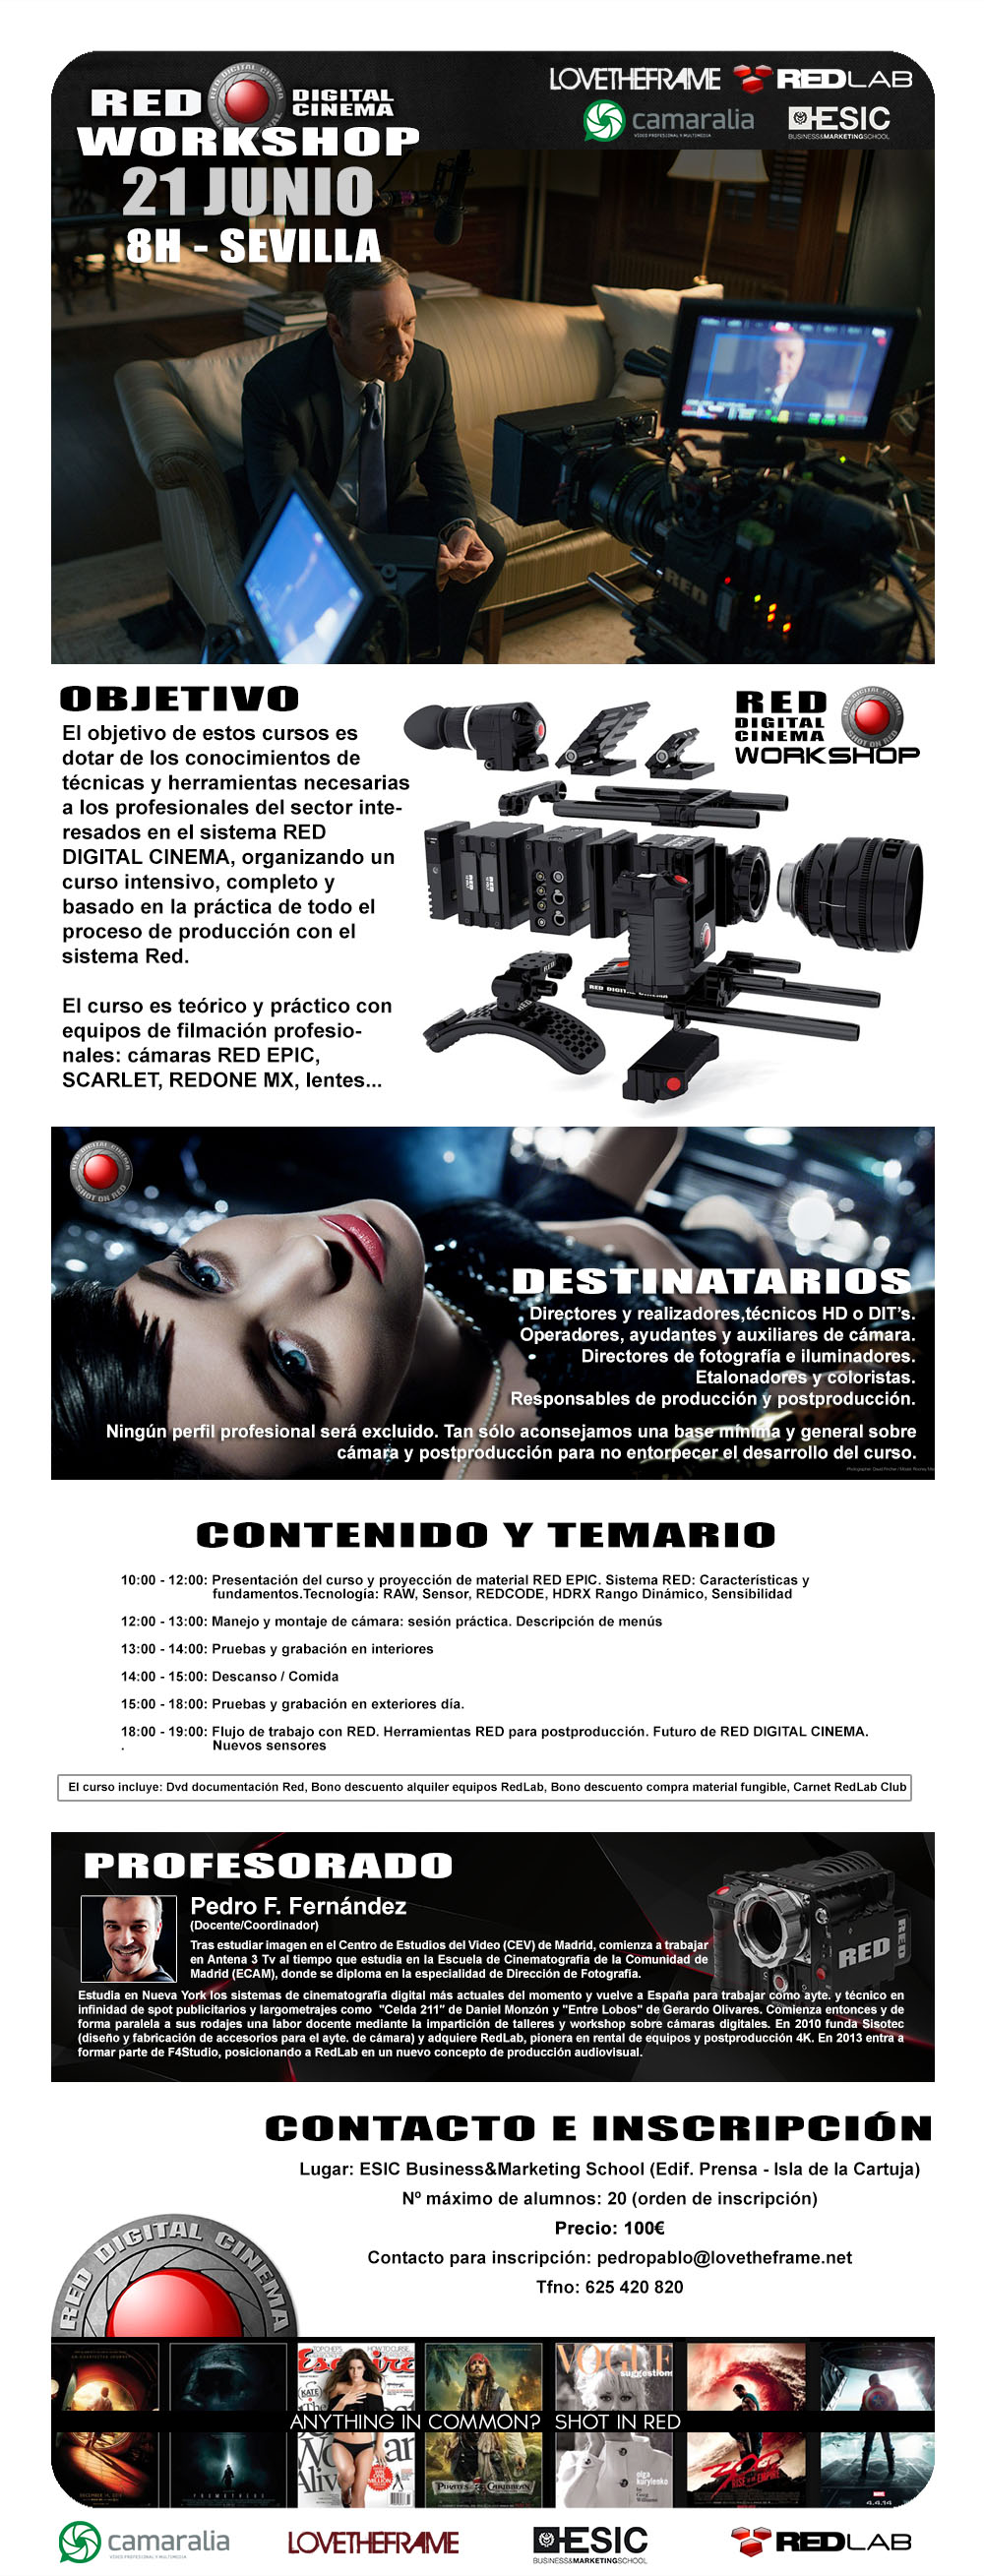 WorkShop sobre RED Digital Cinema el 21 de Junio en Sevilla